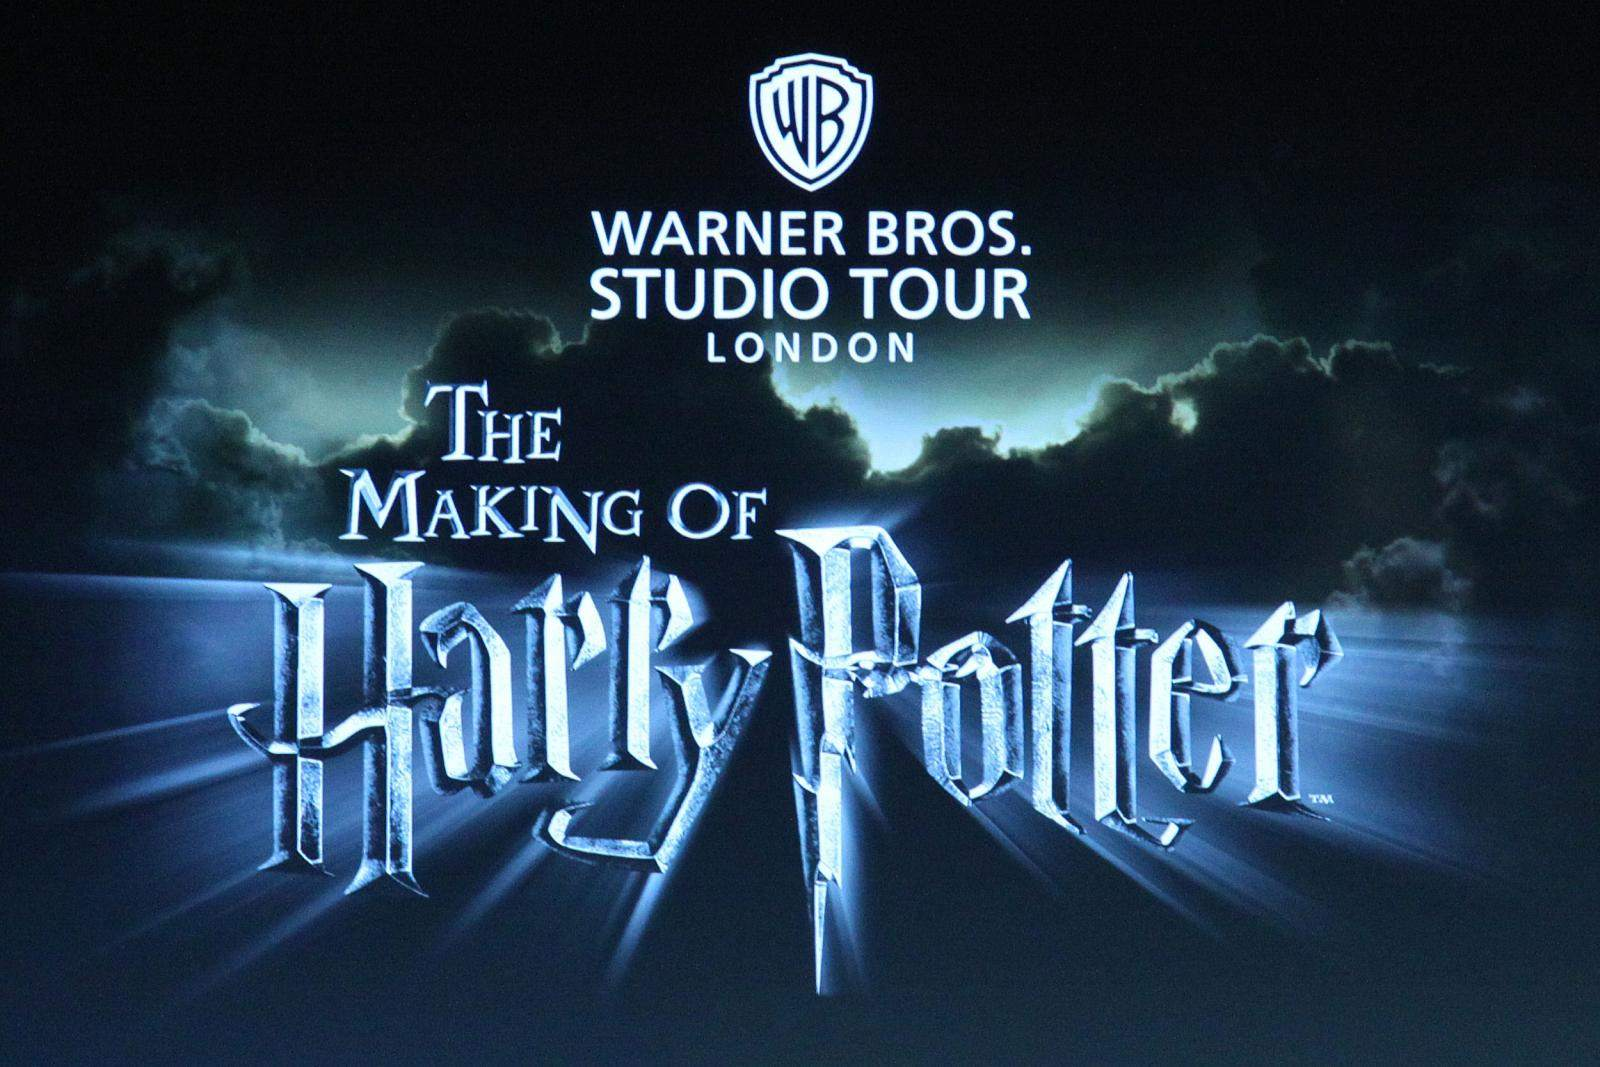 making harry potter18 The Making of Harry Potter, Warner Bros Studio London